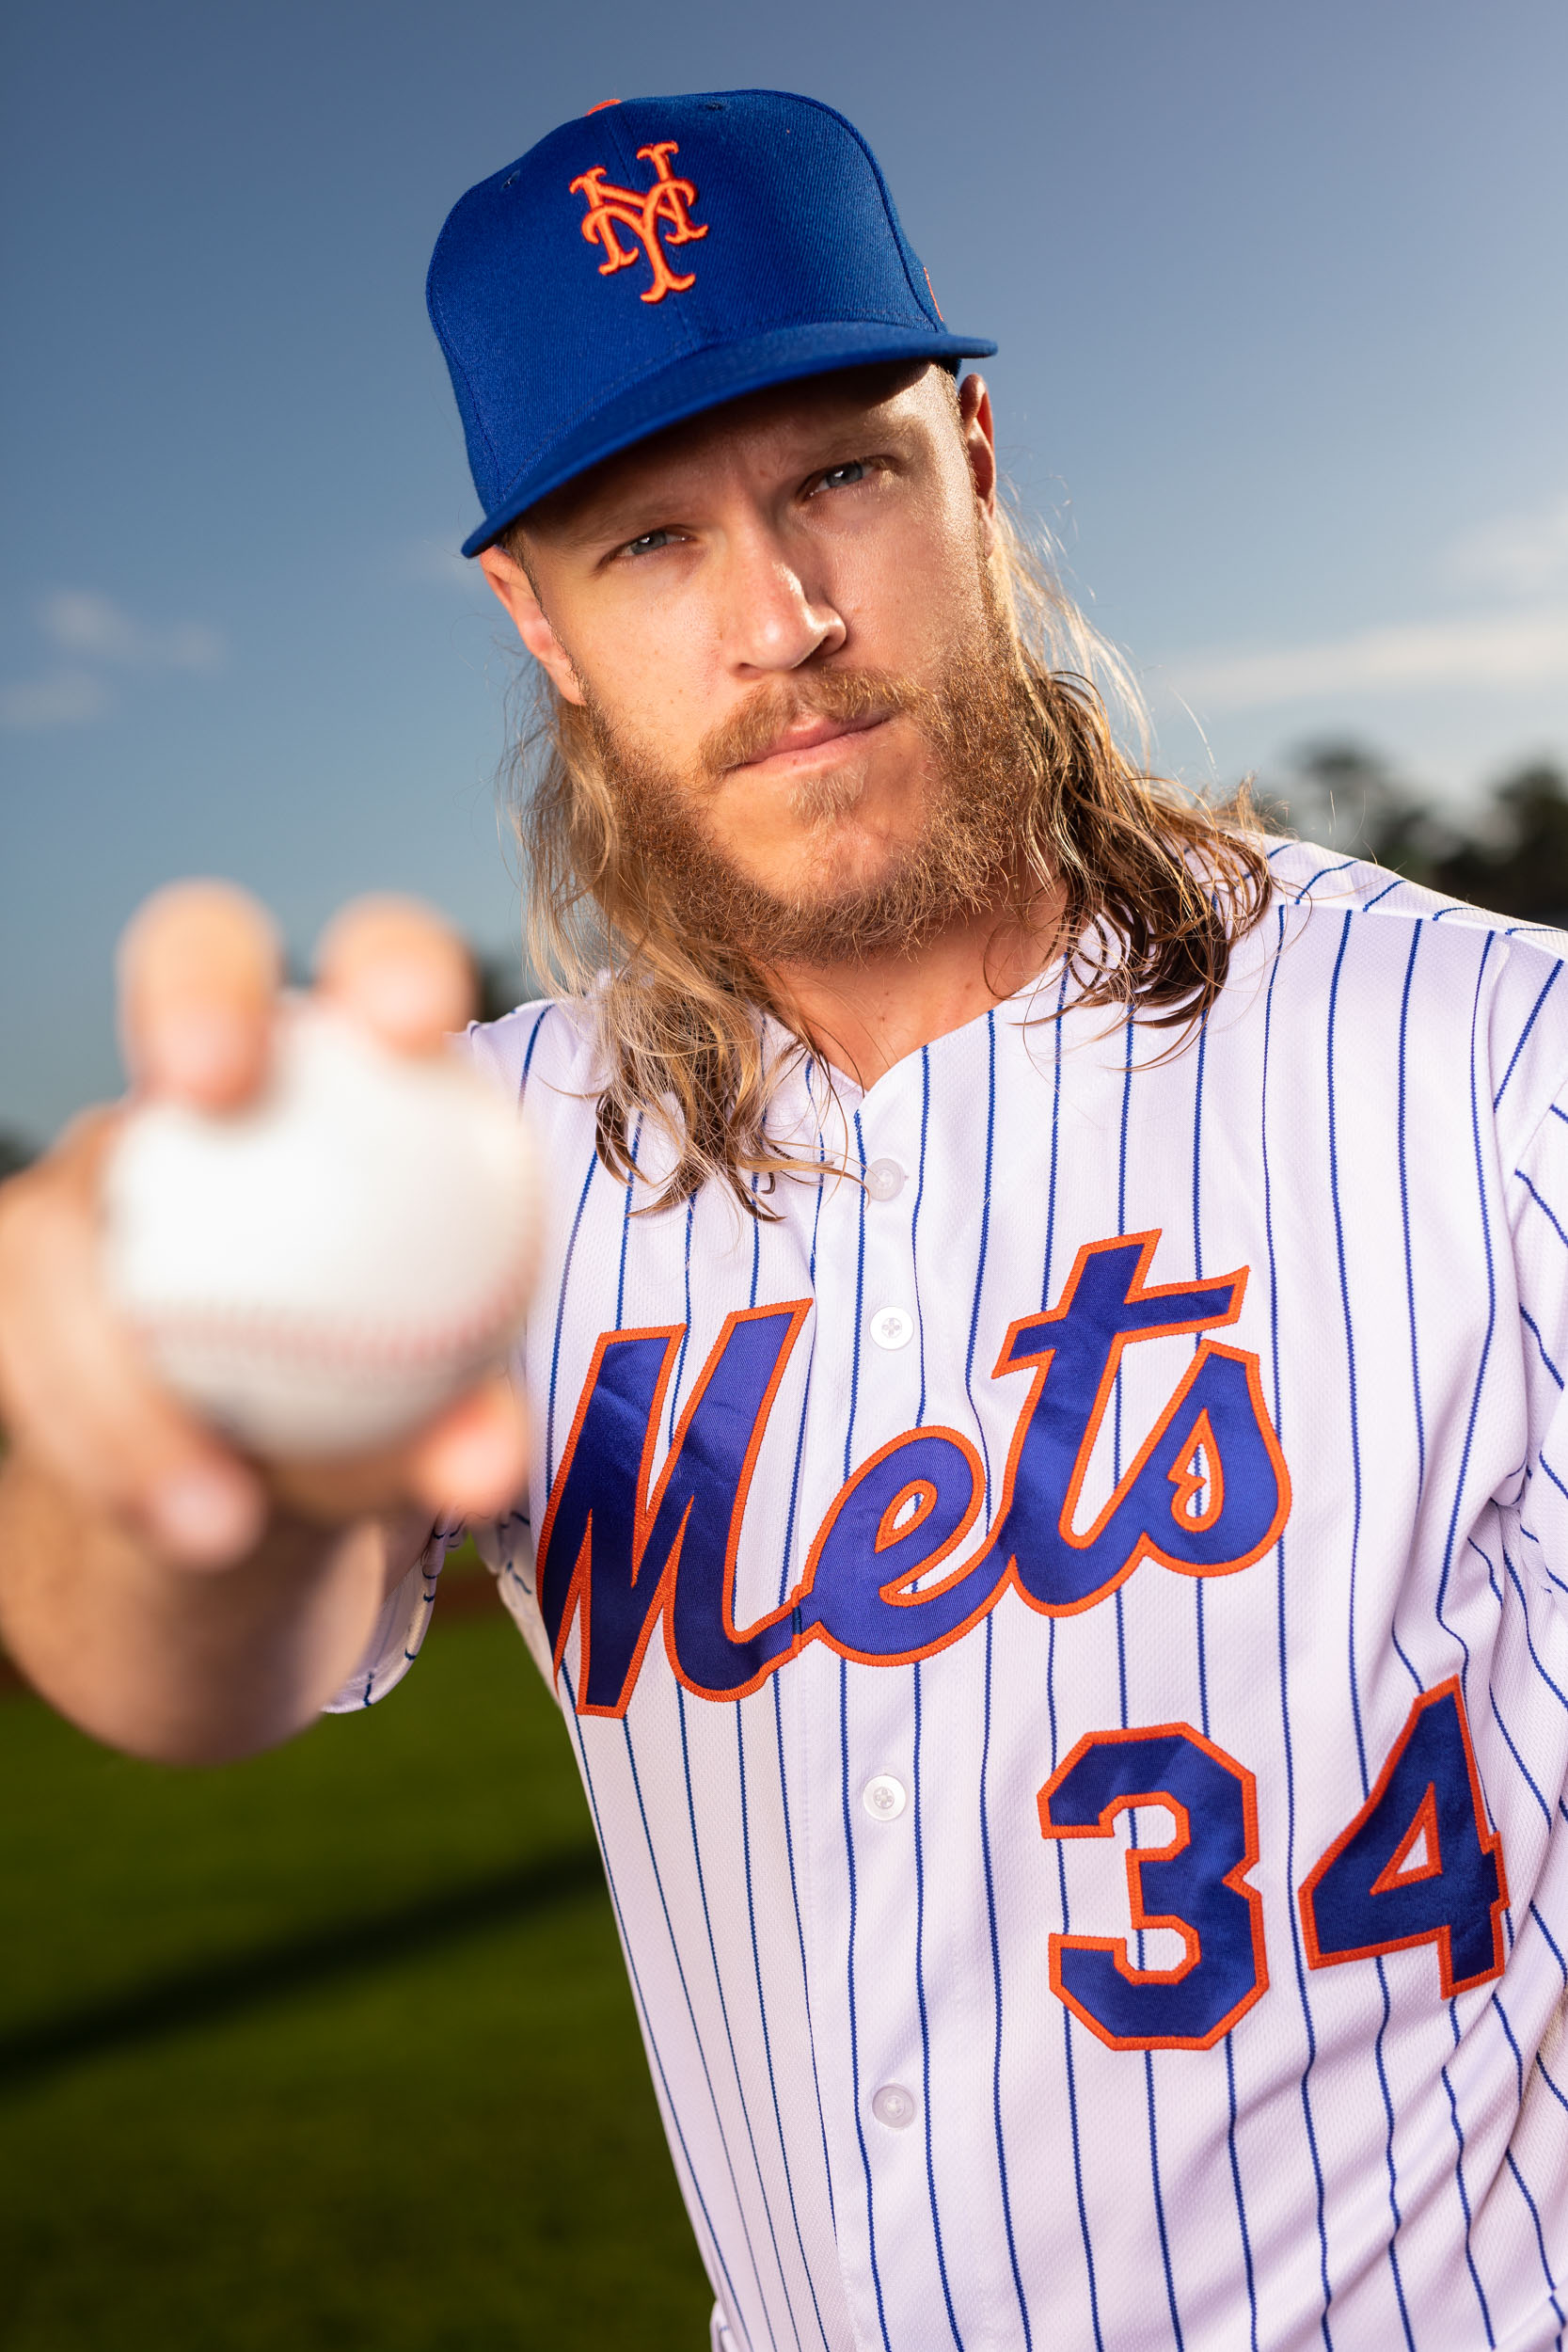 Noah Syndergaard image by Steven Martine, sports and portrait photographer